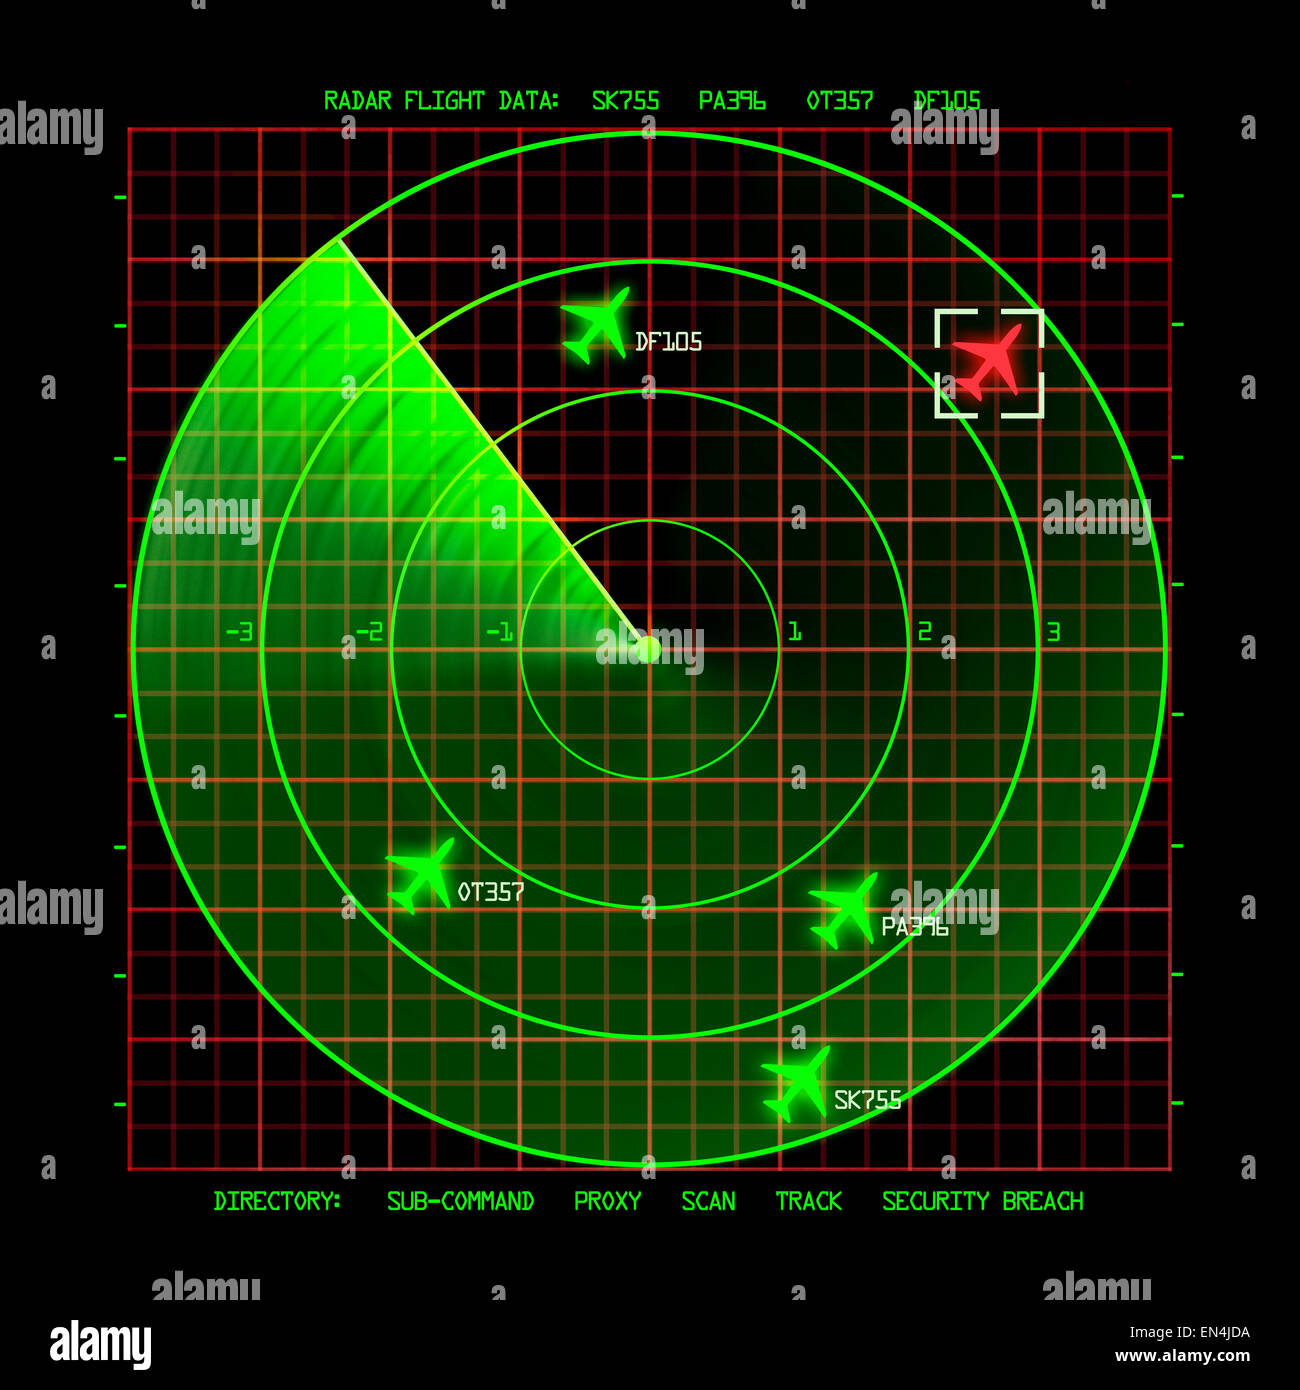 Airport Air Traffic Control Radar Screen with Planes on a Grid. - Stock Image